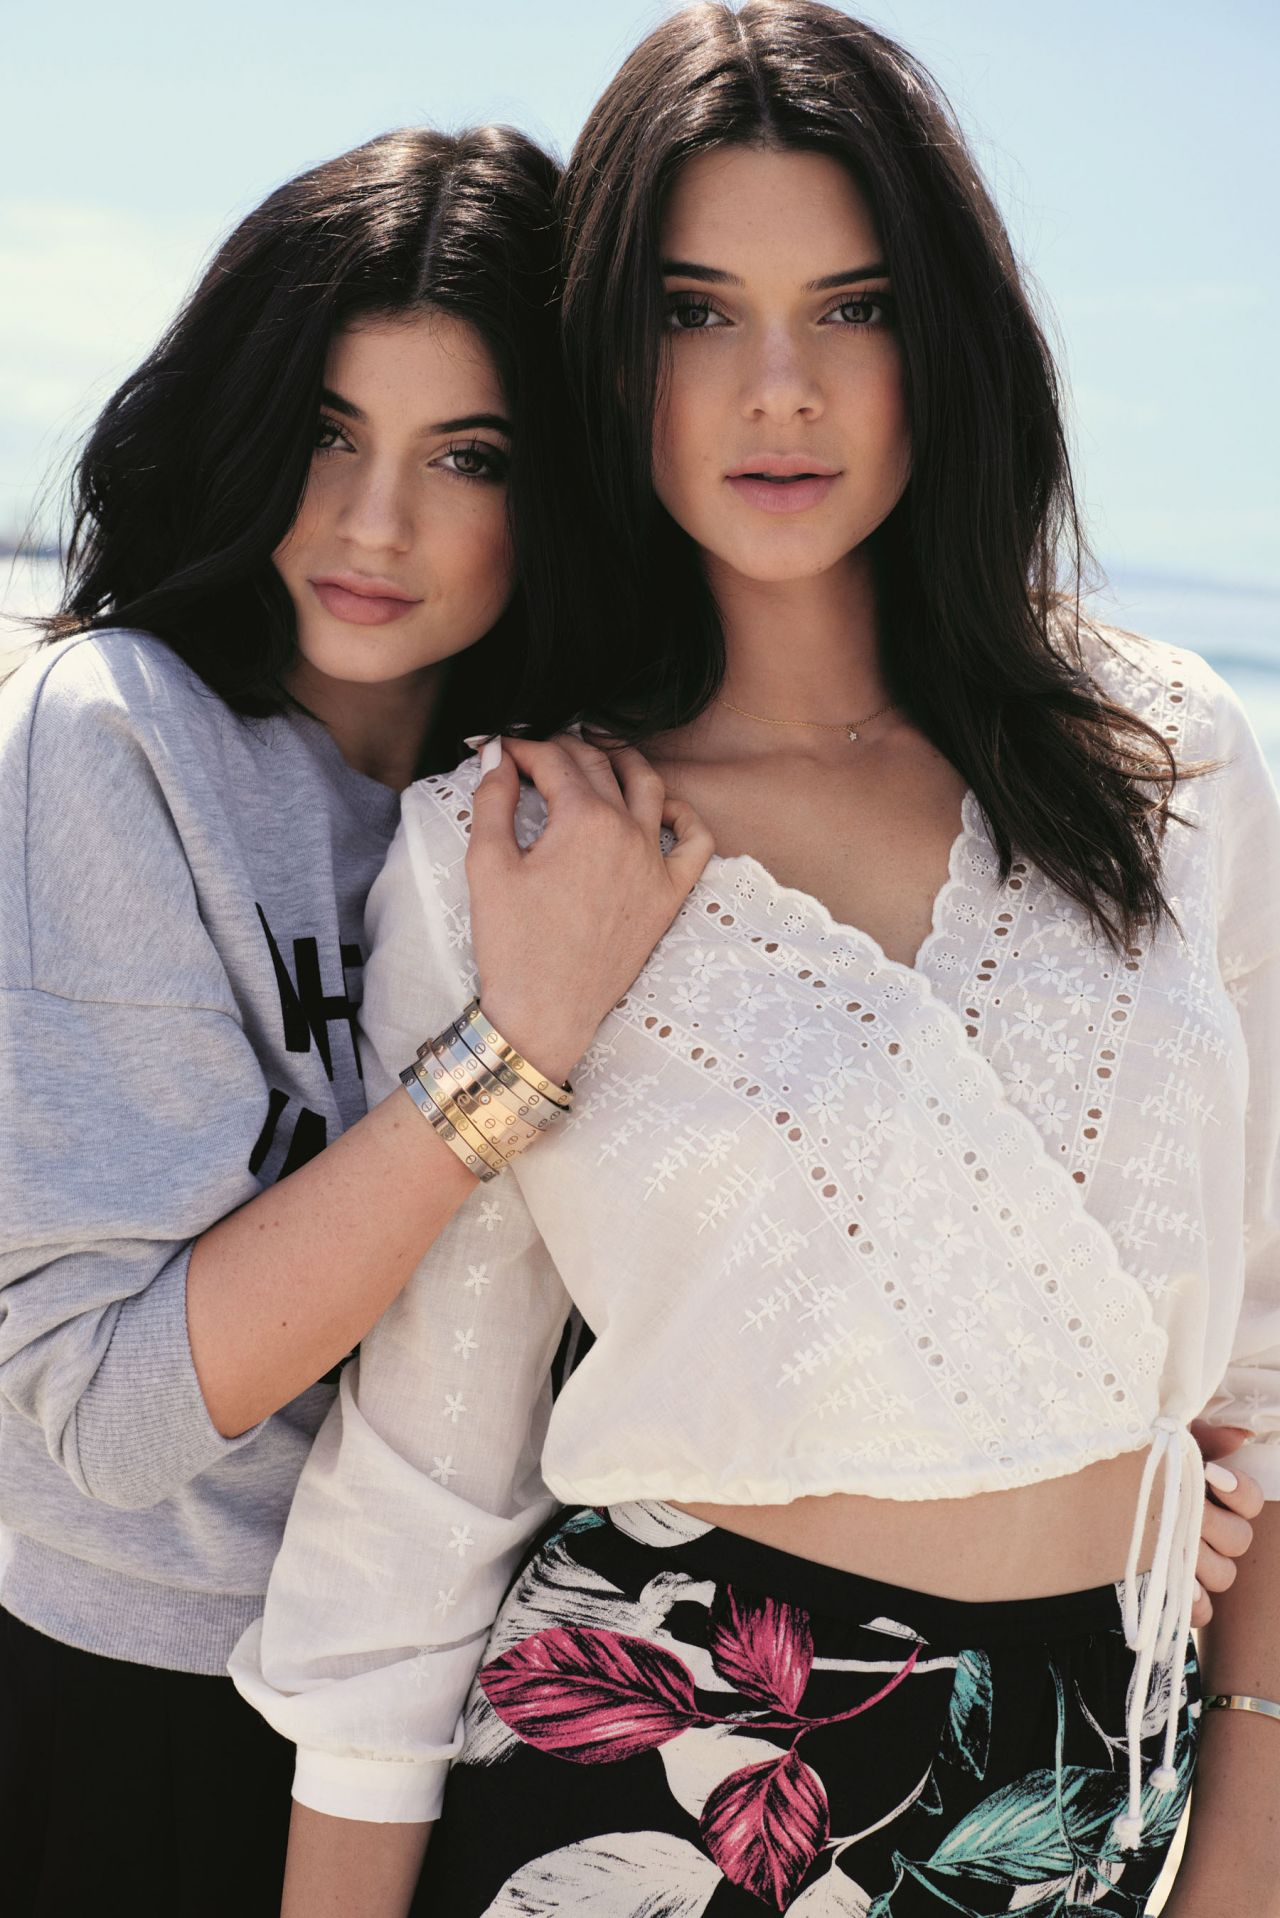 kendall jenner kylie jenner topshop collection promos 2015. Black Bedroom Furniture Sets. Home Design Ideas